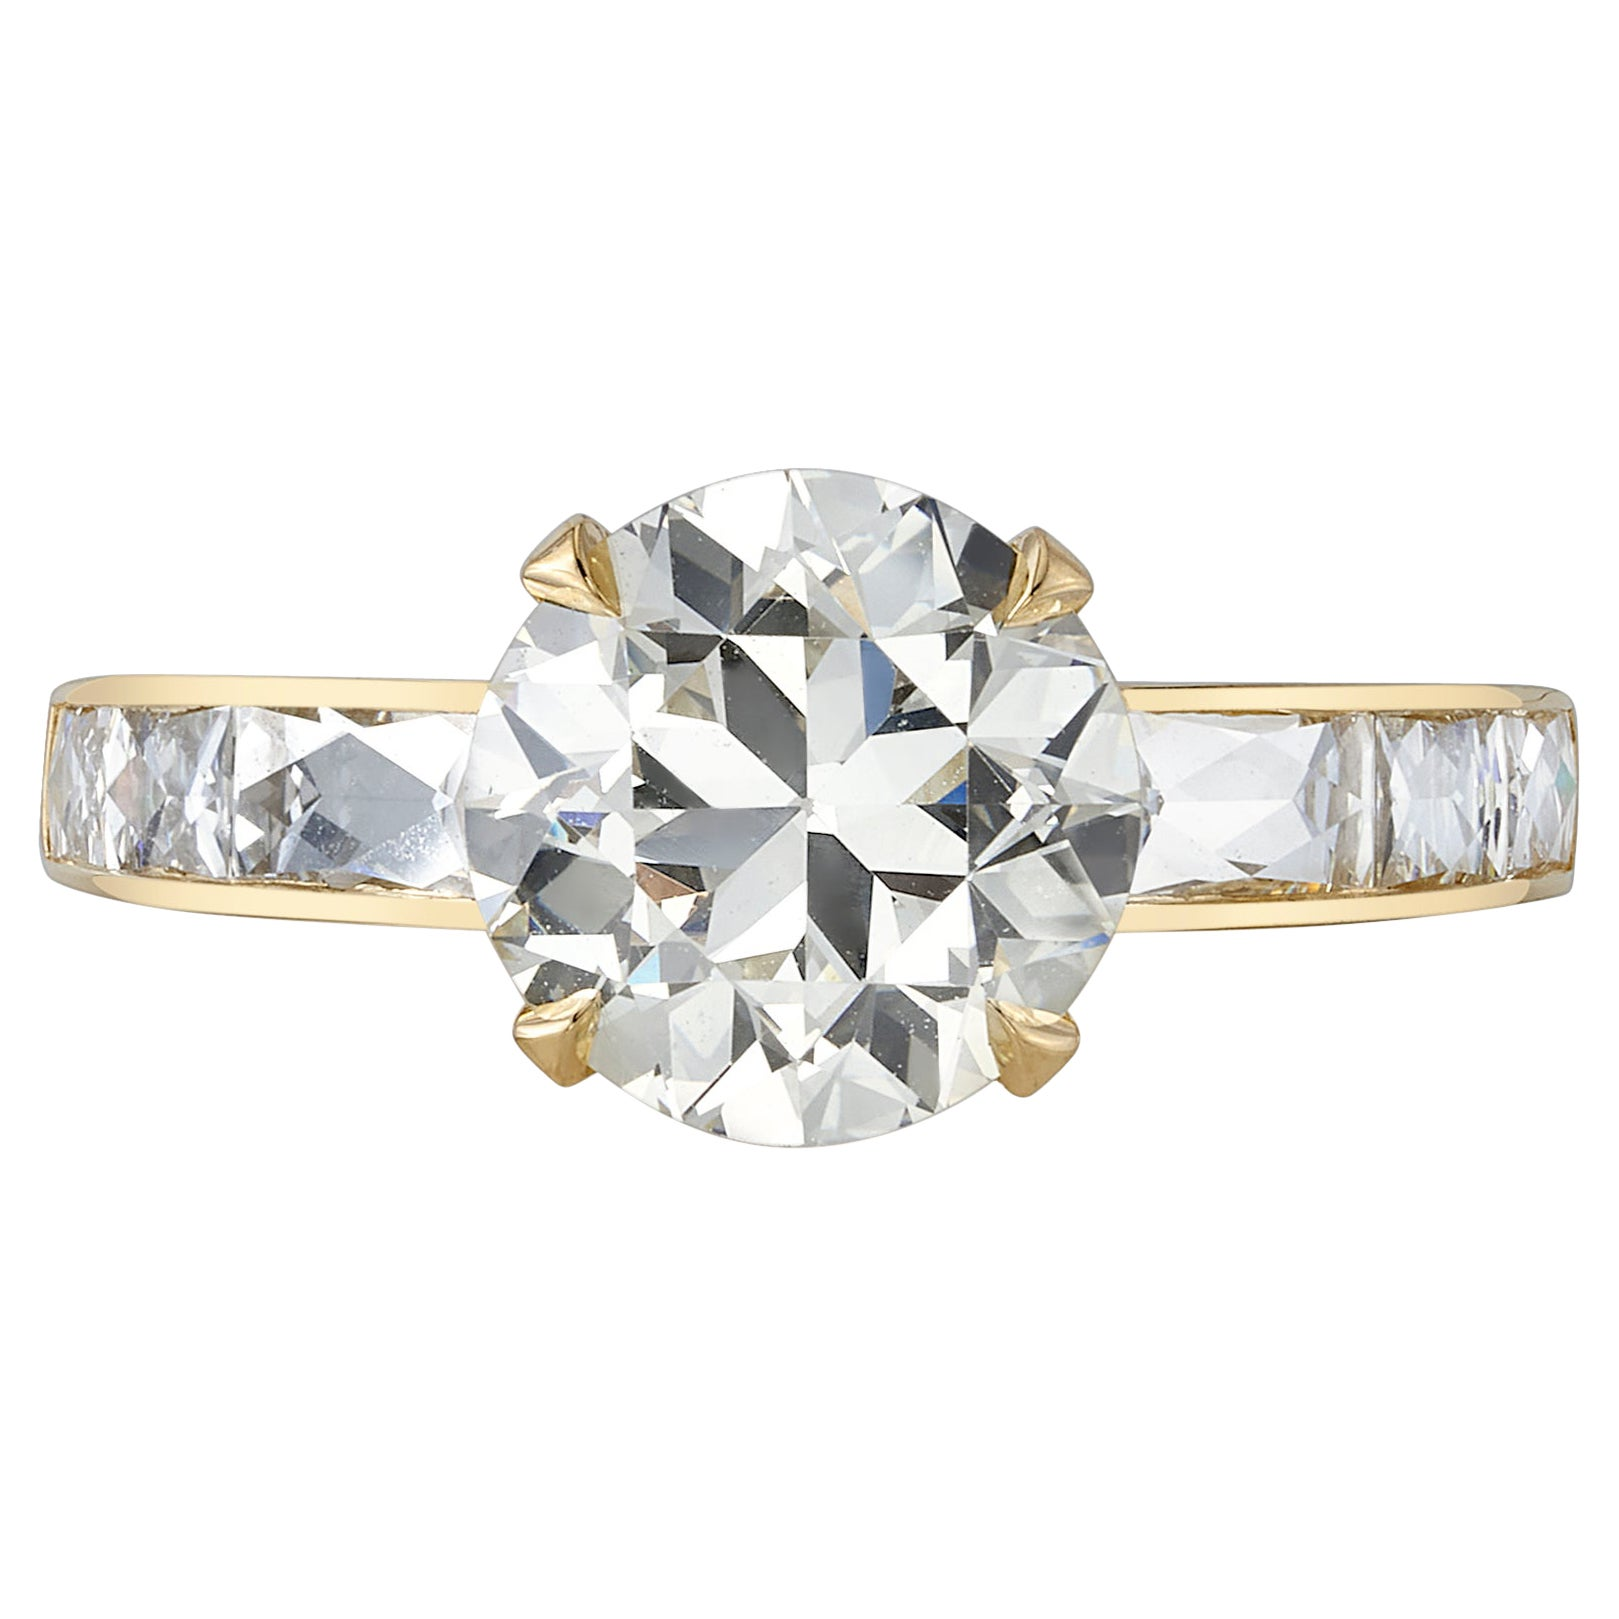 Handcrafted Christina Old European Cut Diamond Ring by Single Stone